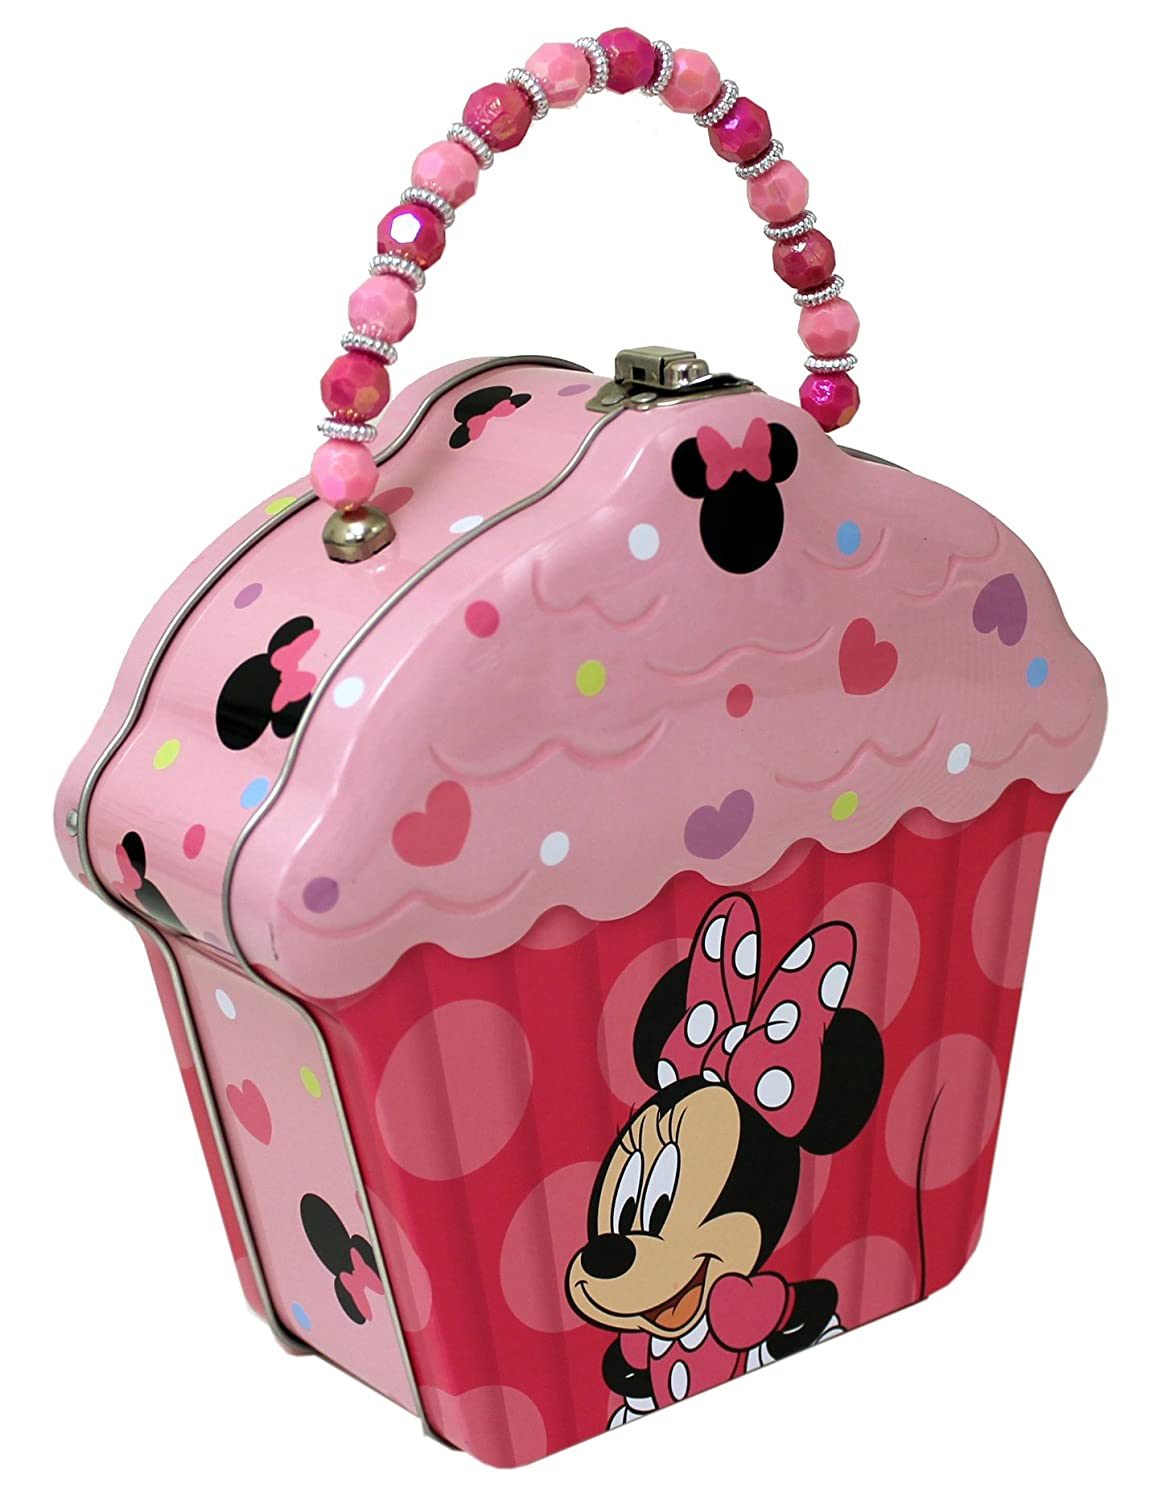 4SGM 15309 The Tin Box Company Cupcake Shape Tin Purse 523607-12